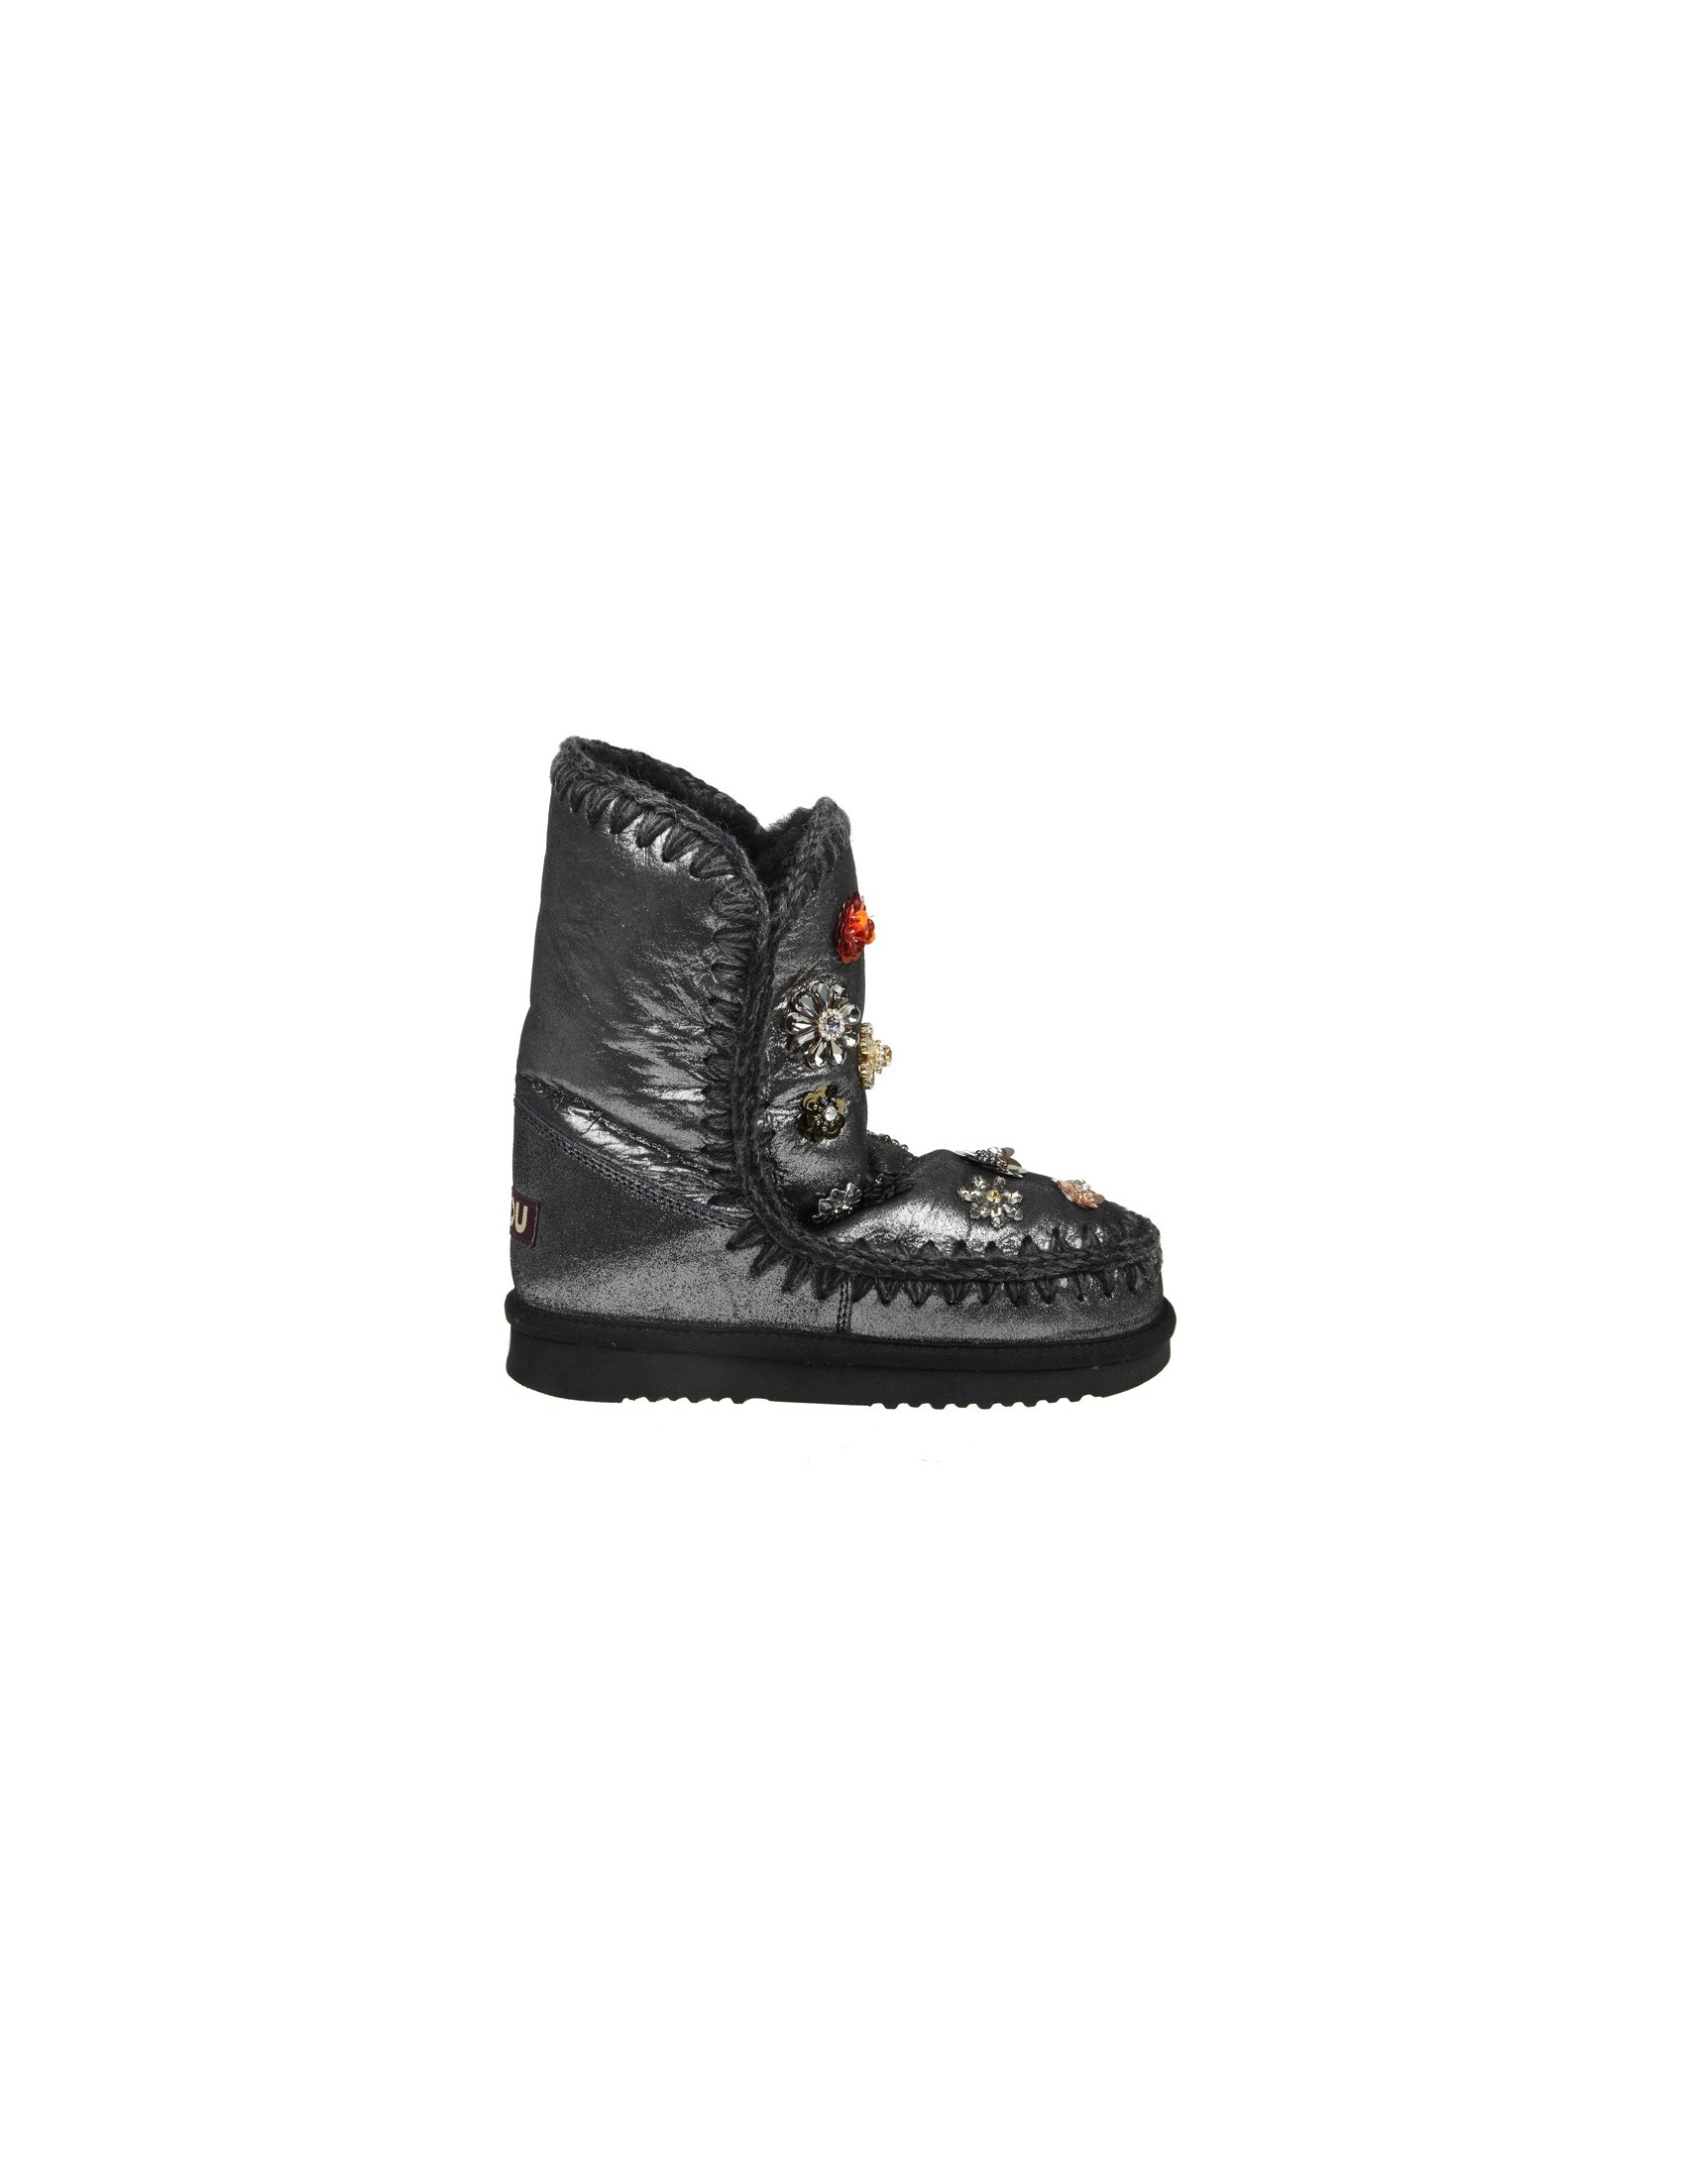 "MOU BOOT ""ESKIMO 24"" laminated gray leather fur flowers"